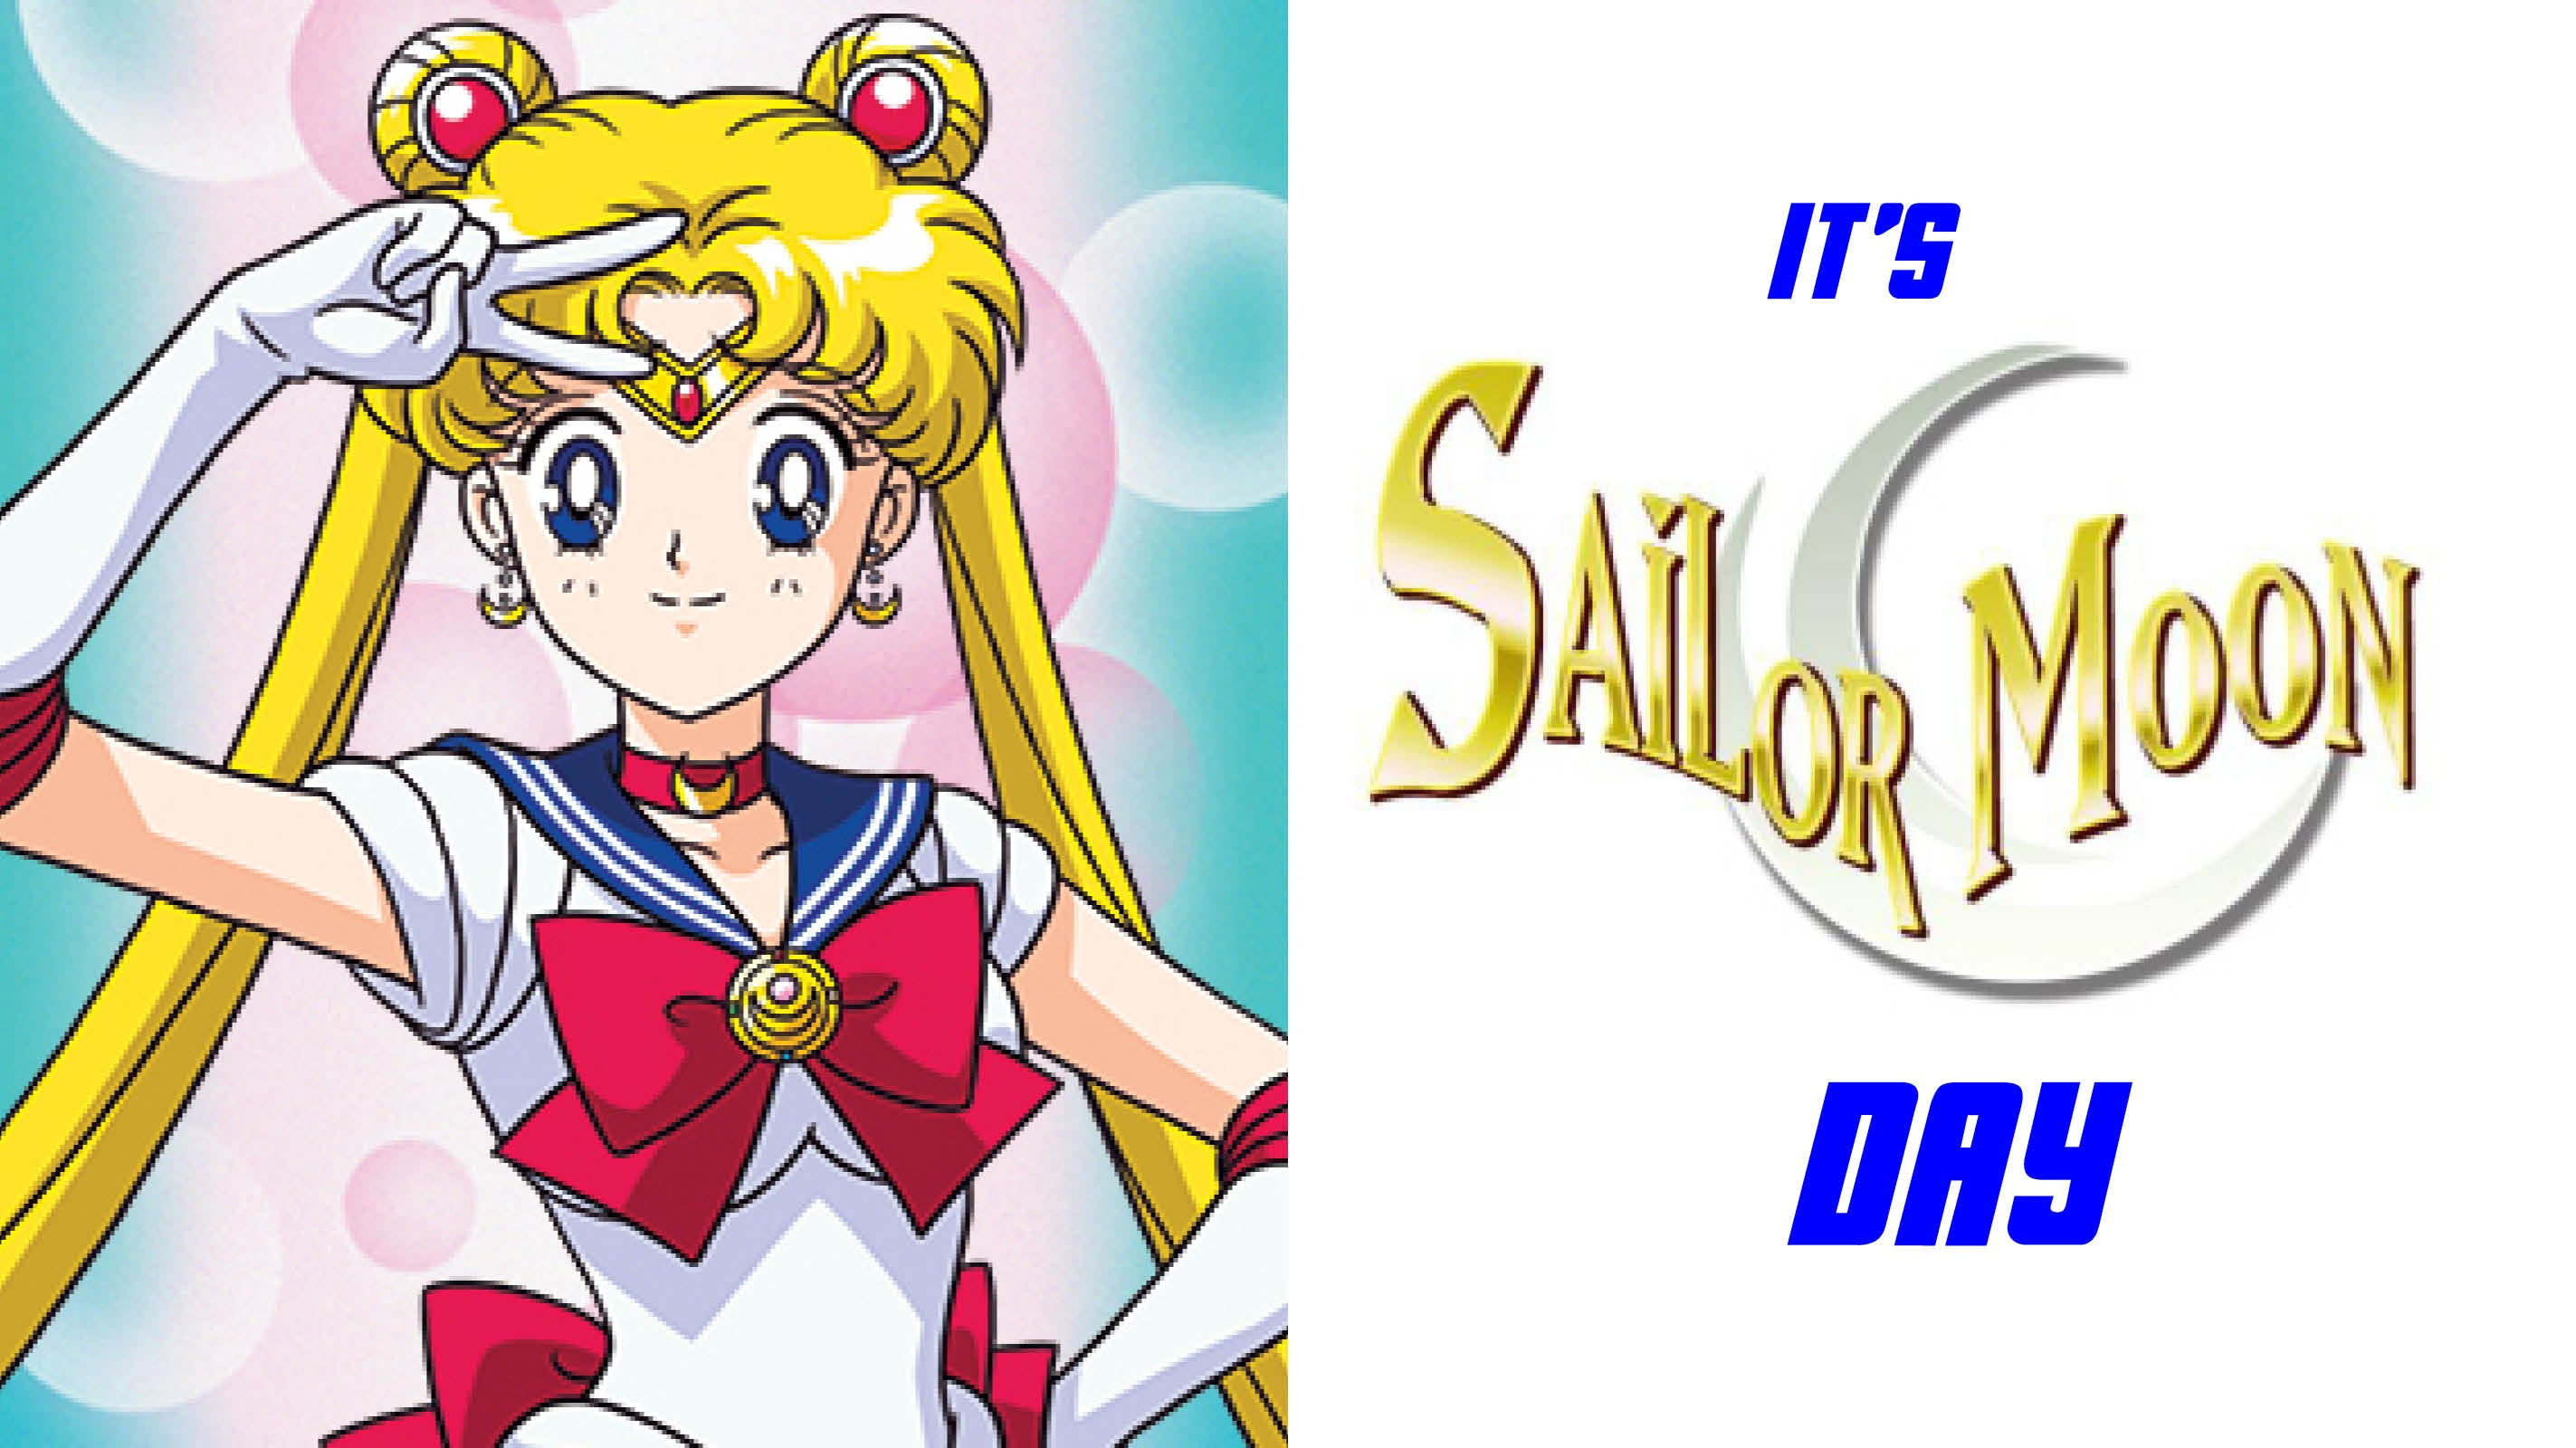 SAILOR MOON DAY